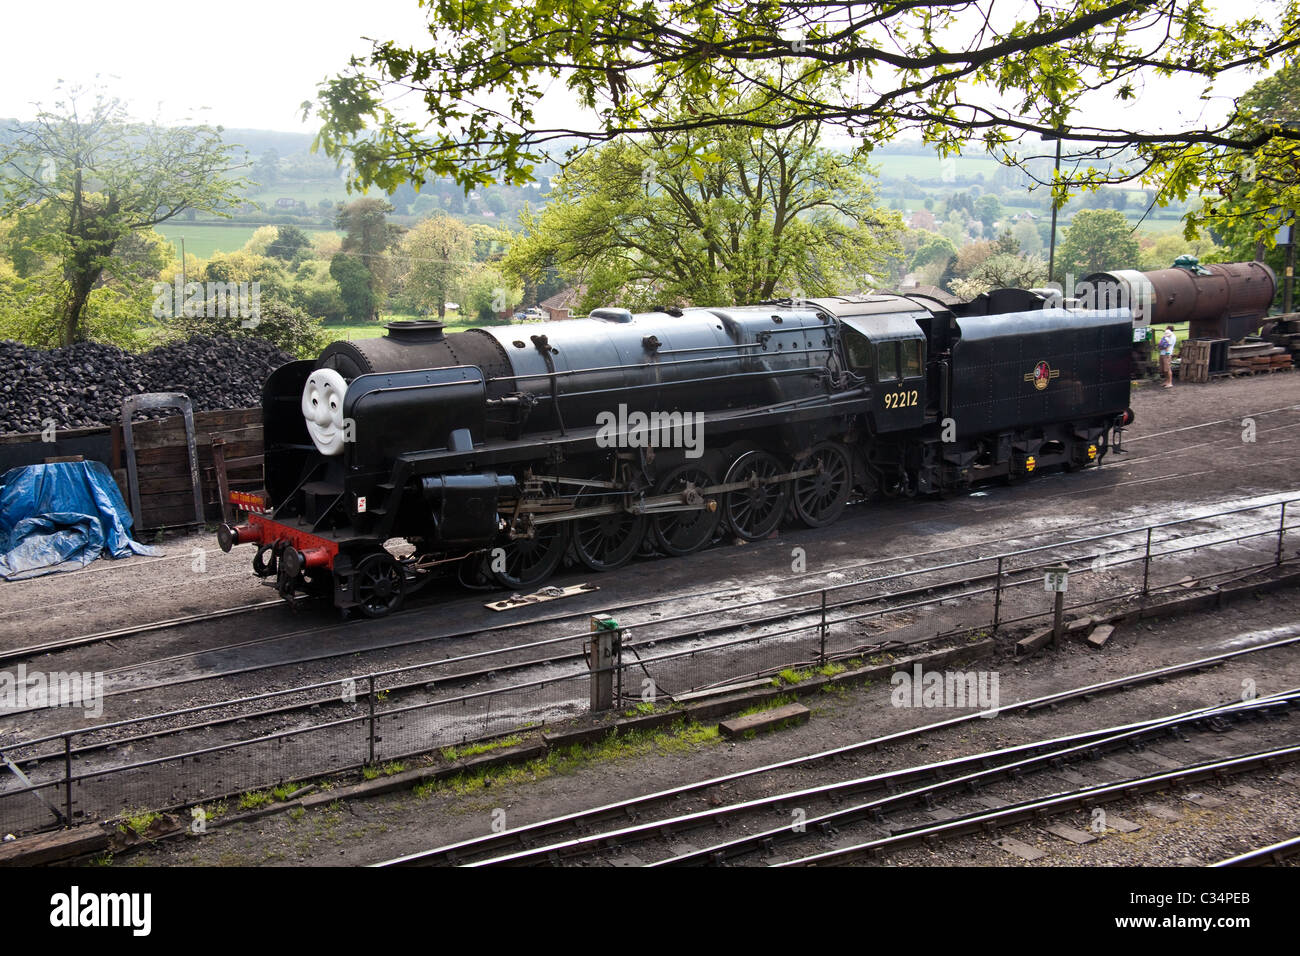 B&o Arnhem Four Train Event Stock Photos Four Train Event Stock Images Alamy